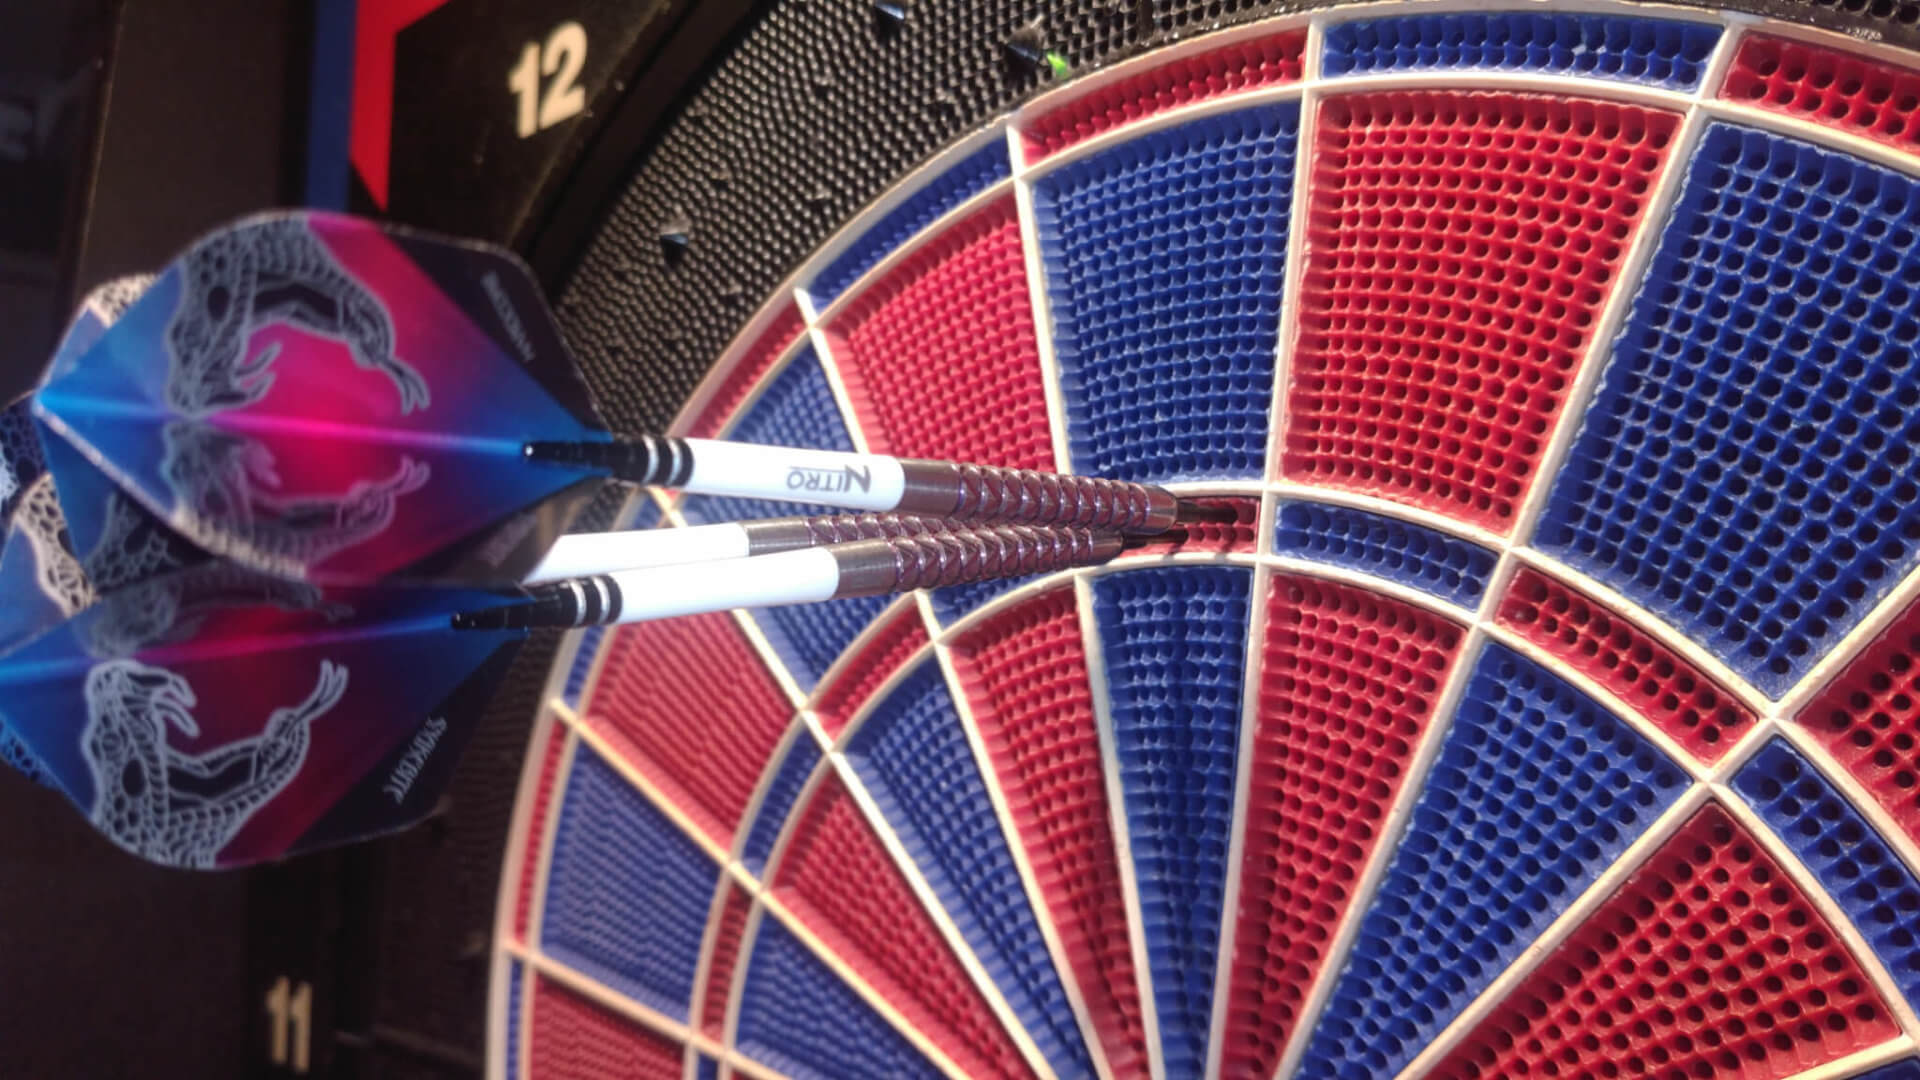 Red Dragon - Peter Wright Vyper - Softdarts